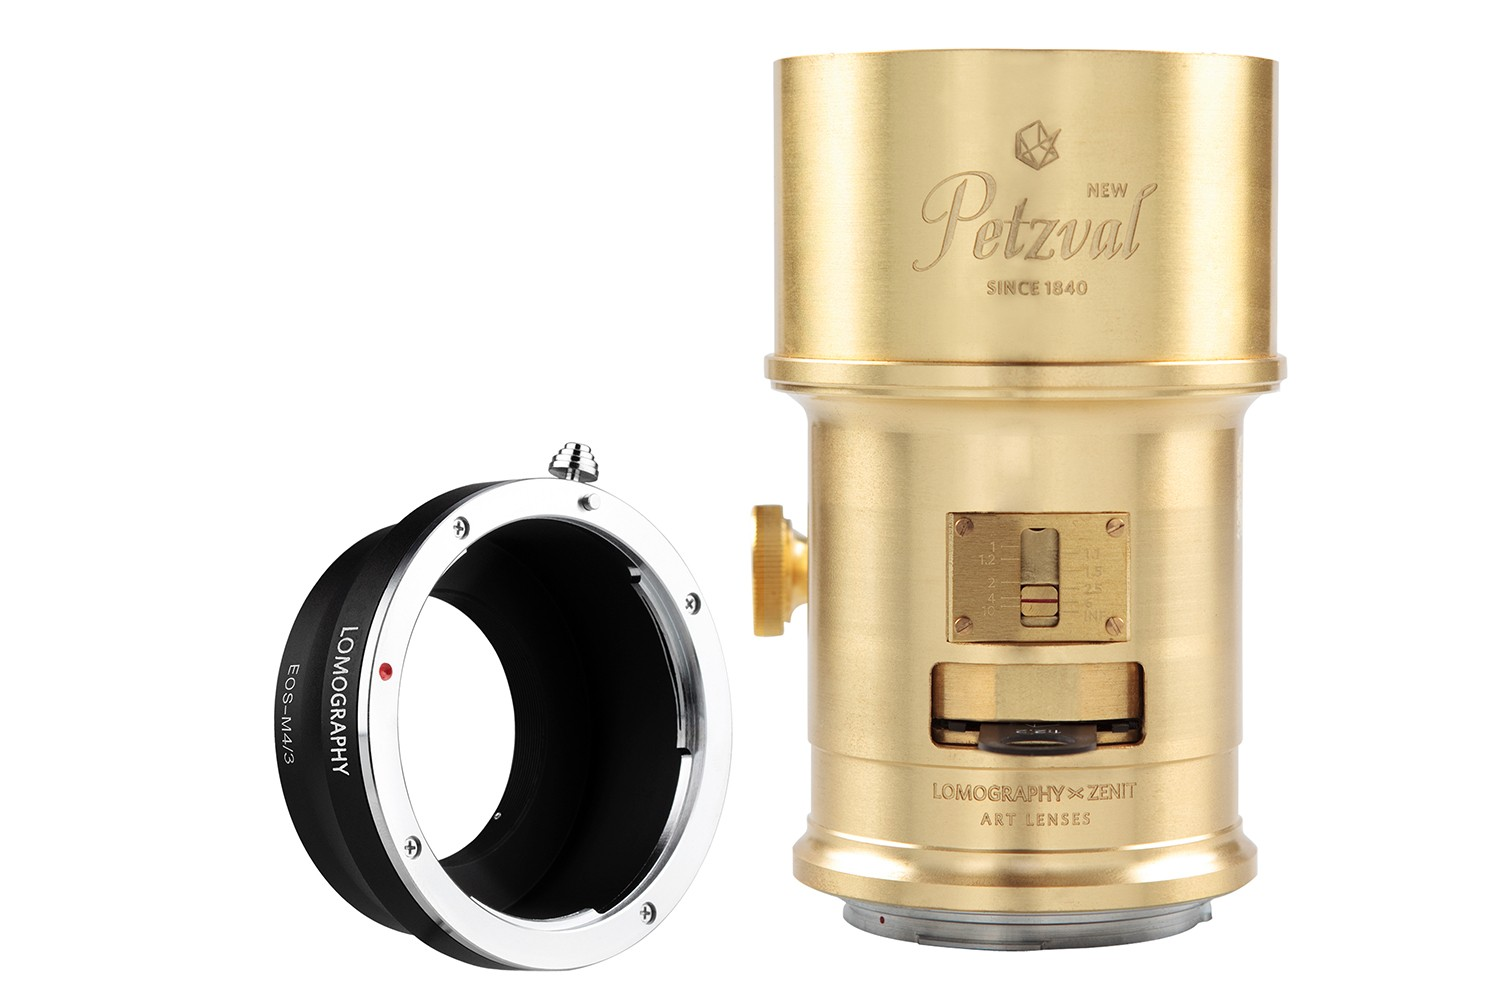 New Petzval 85 Art Lens Brass - Canon EF Mount with M4/3 Adapter